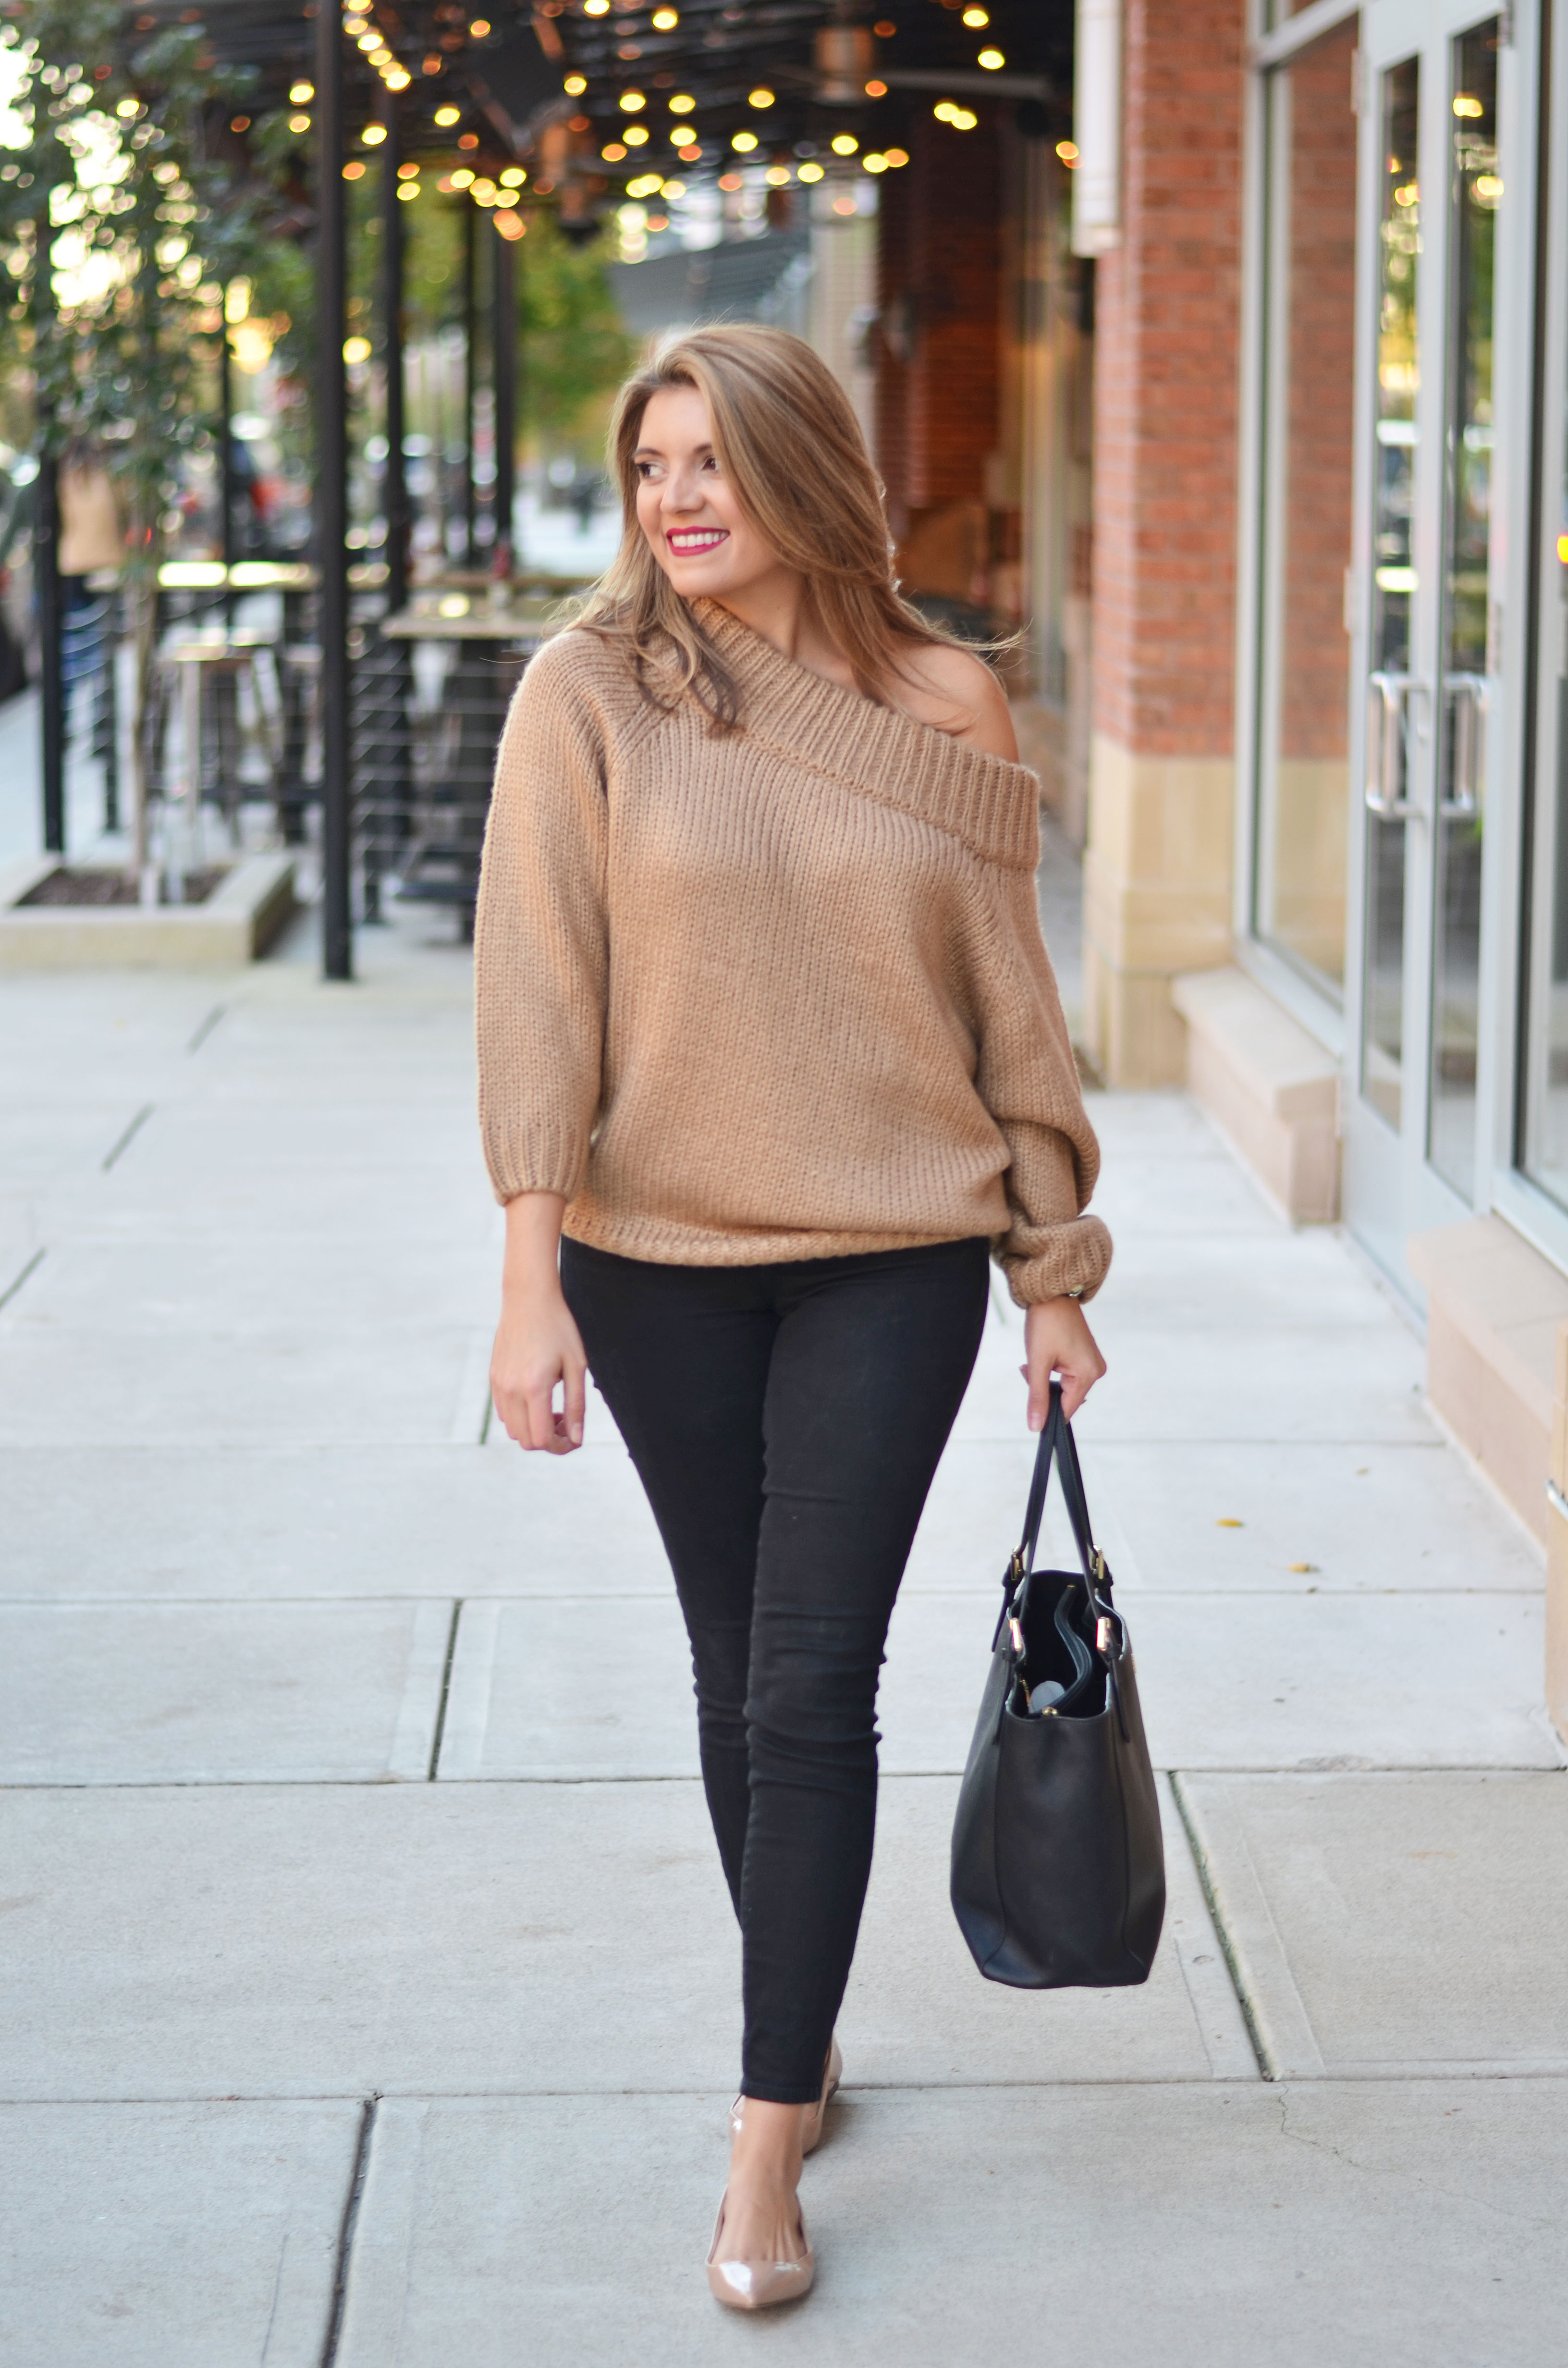 eb15aedb097 camel off shoulder sweater outfit - chunky camel sweater with black jeans  and nude flats